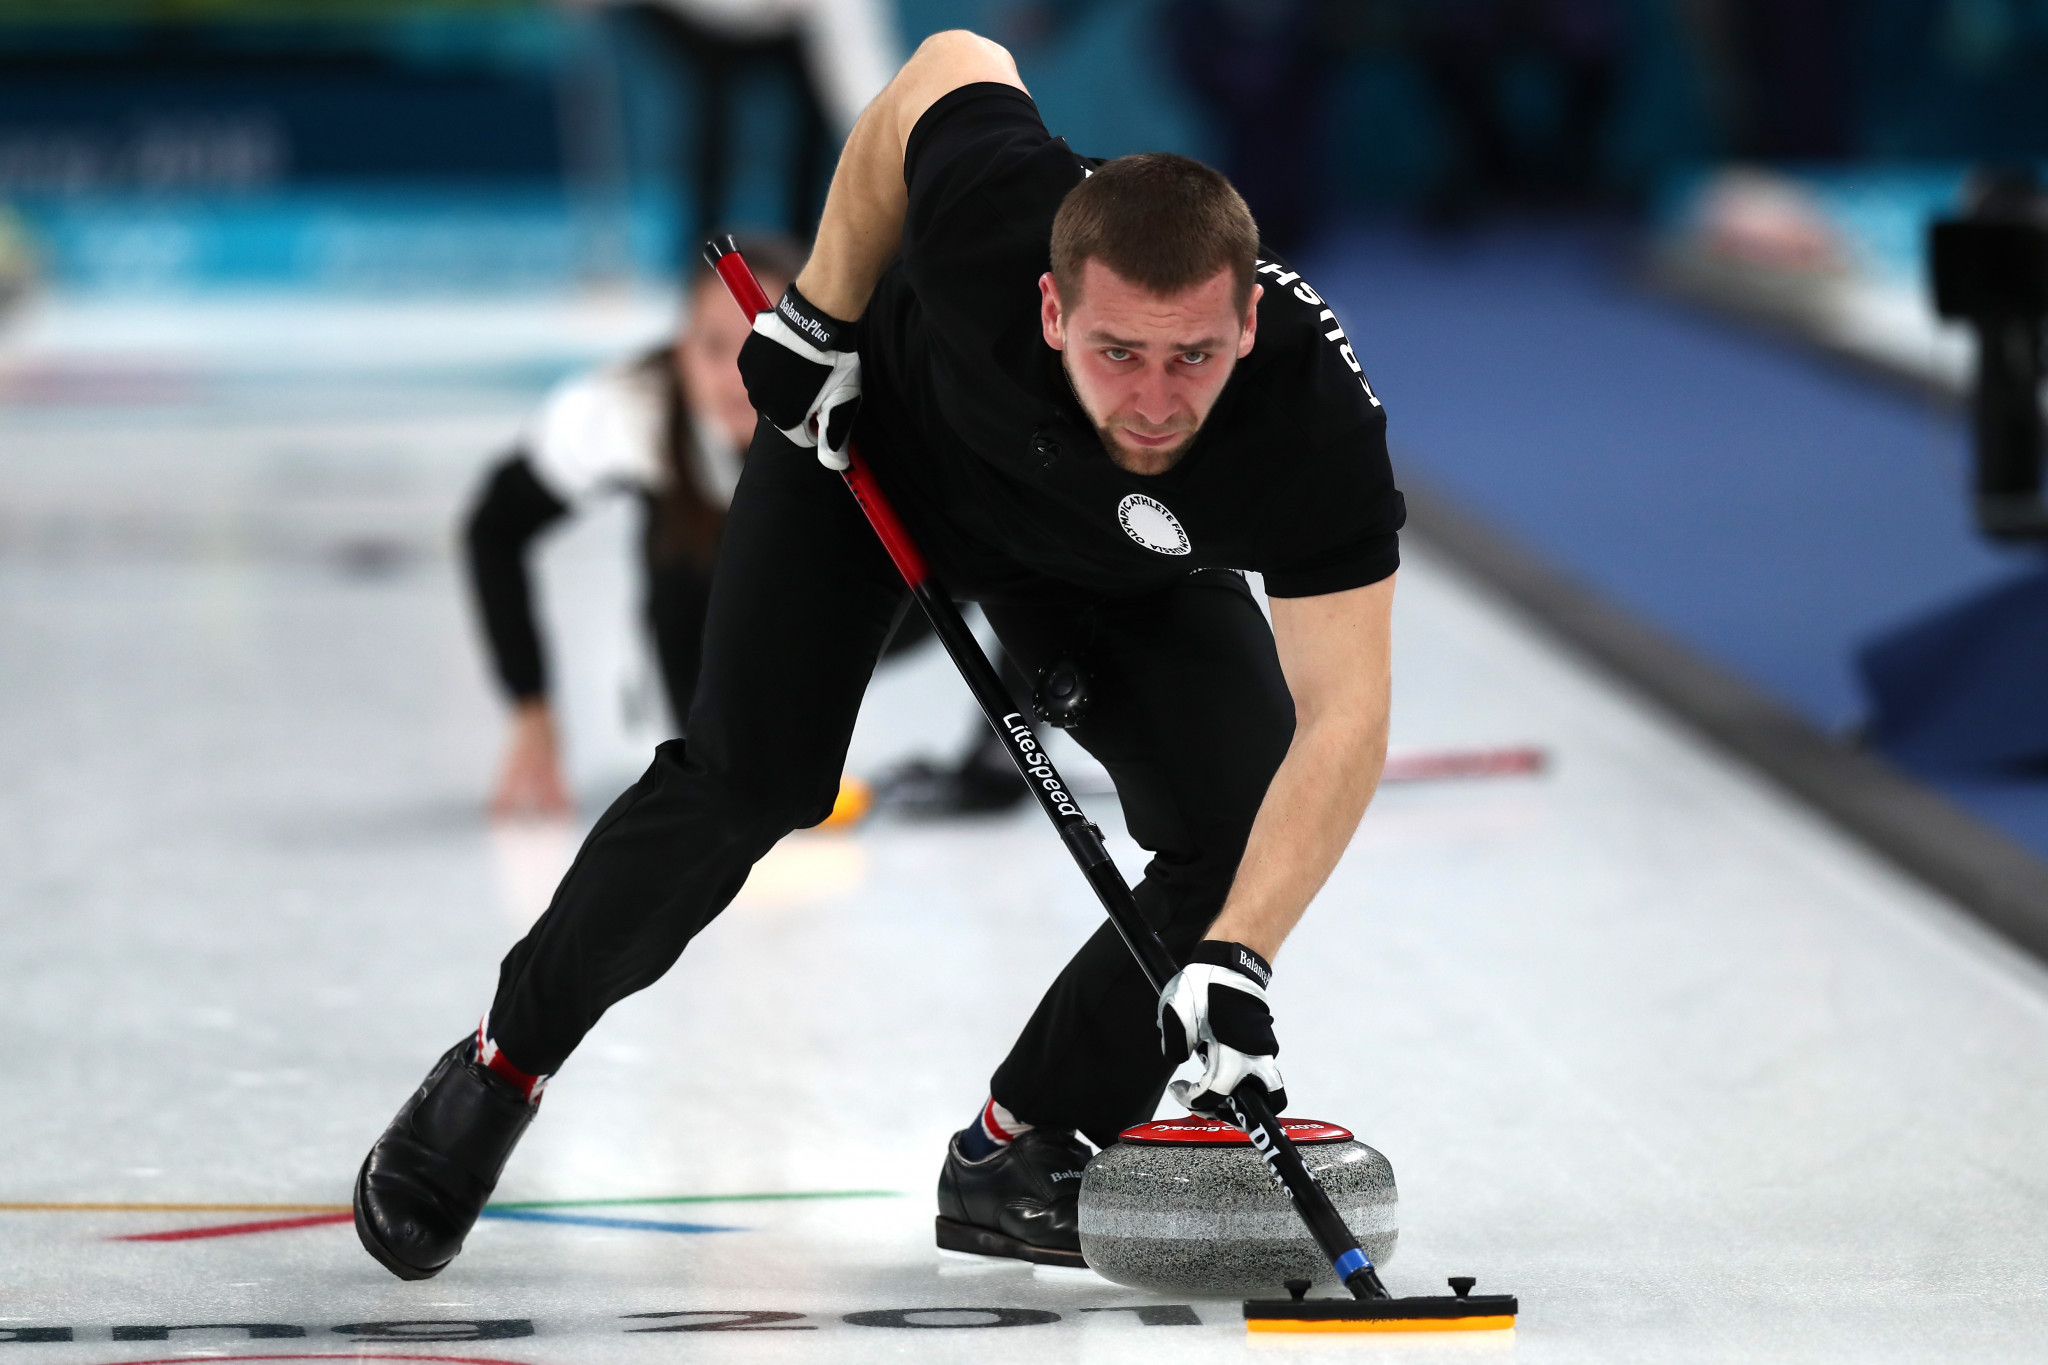 Russia hope dropping curler's doping appeal to CAS will help get ban at Pyeongchang 2018 lifted